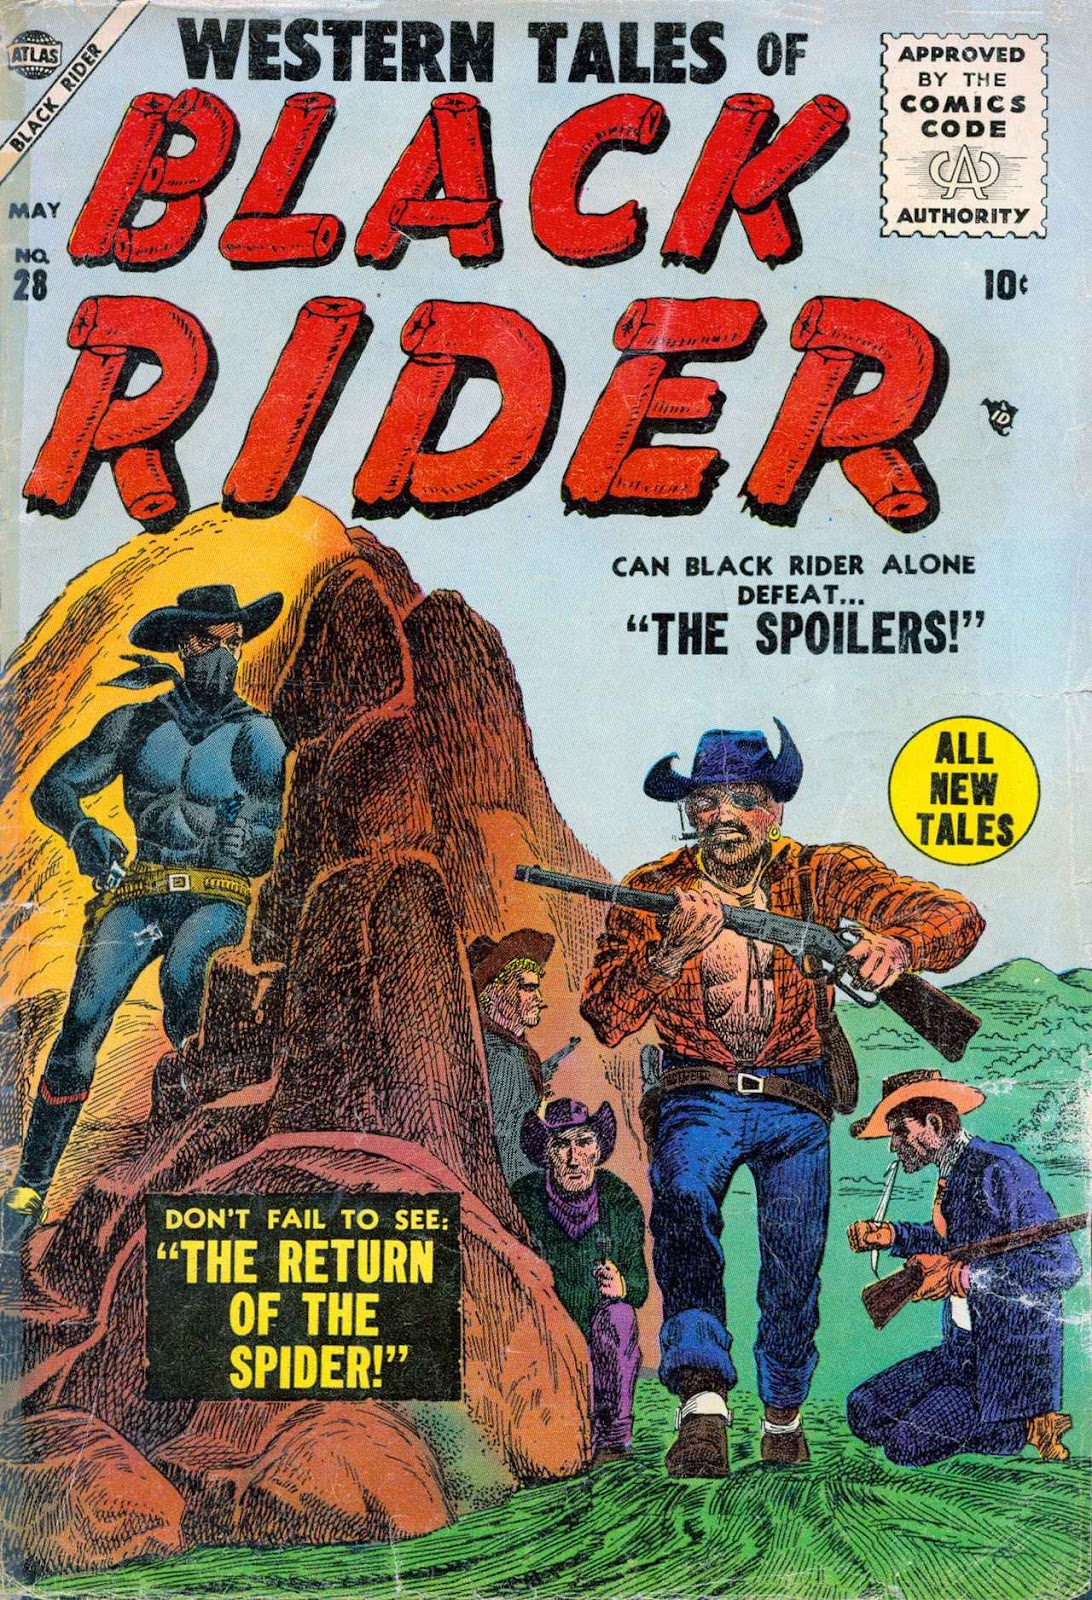 Western Tales of Black Rider issue 28 - Page 1